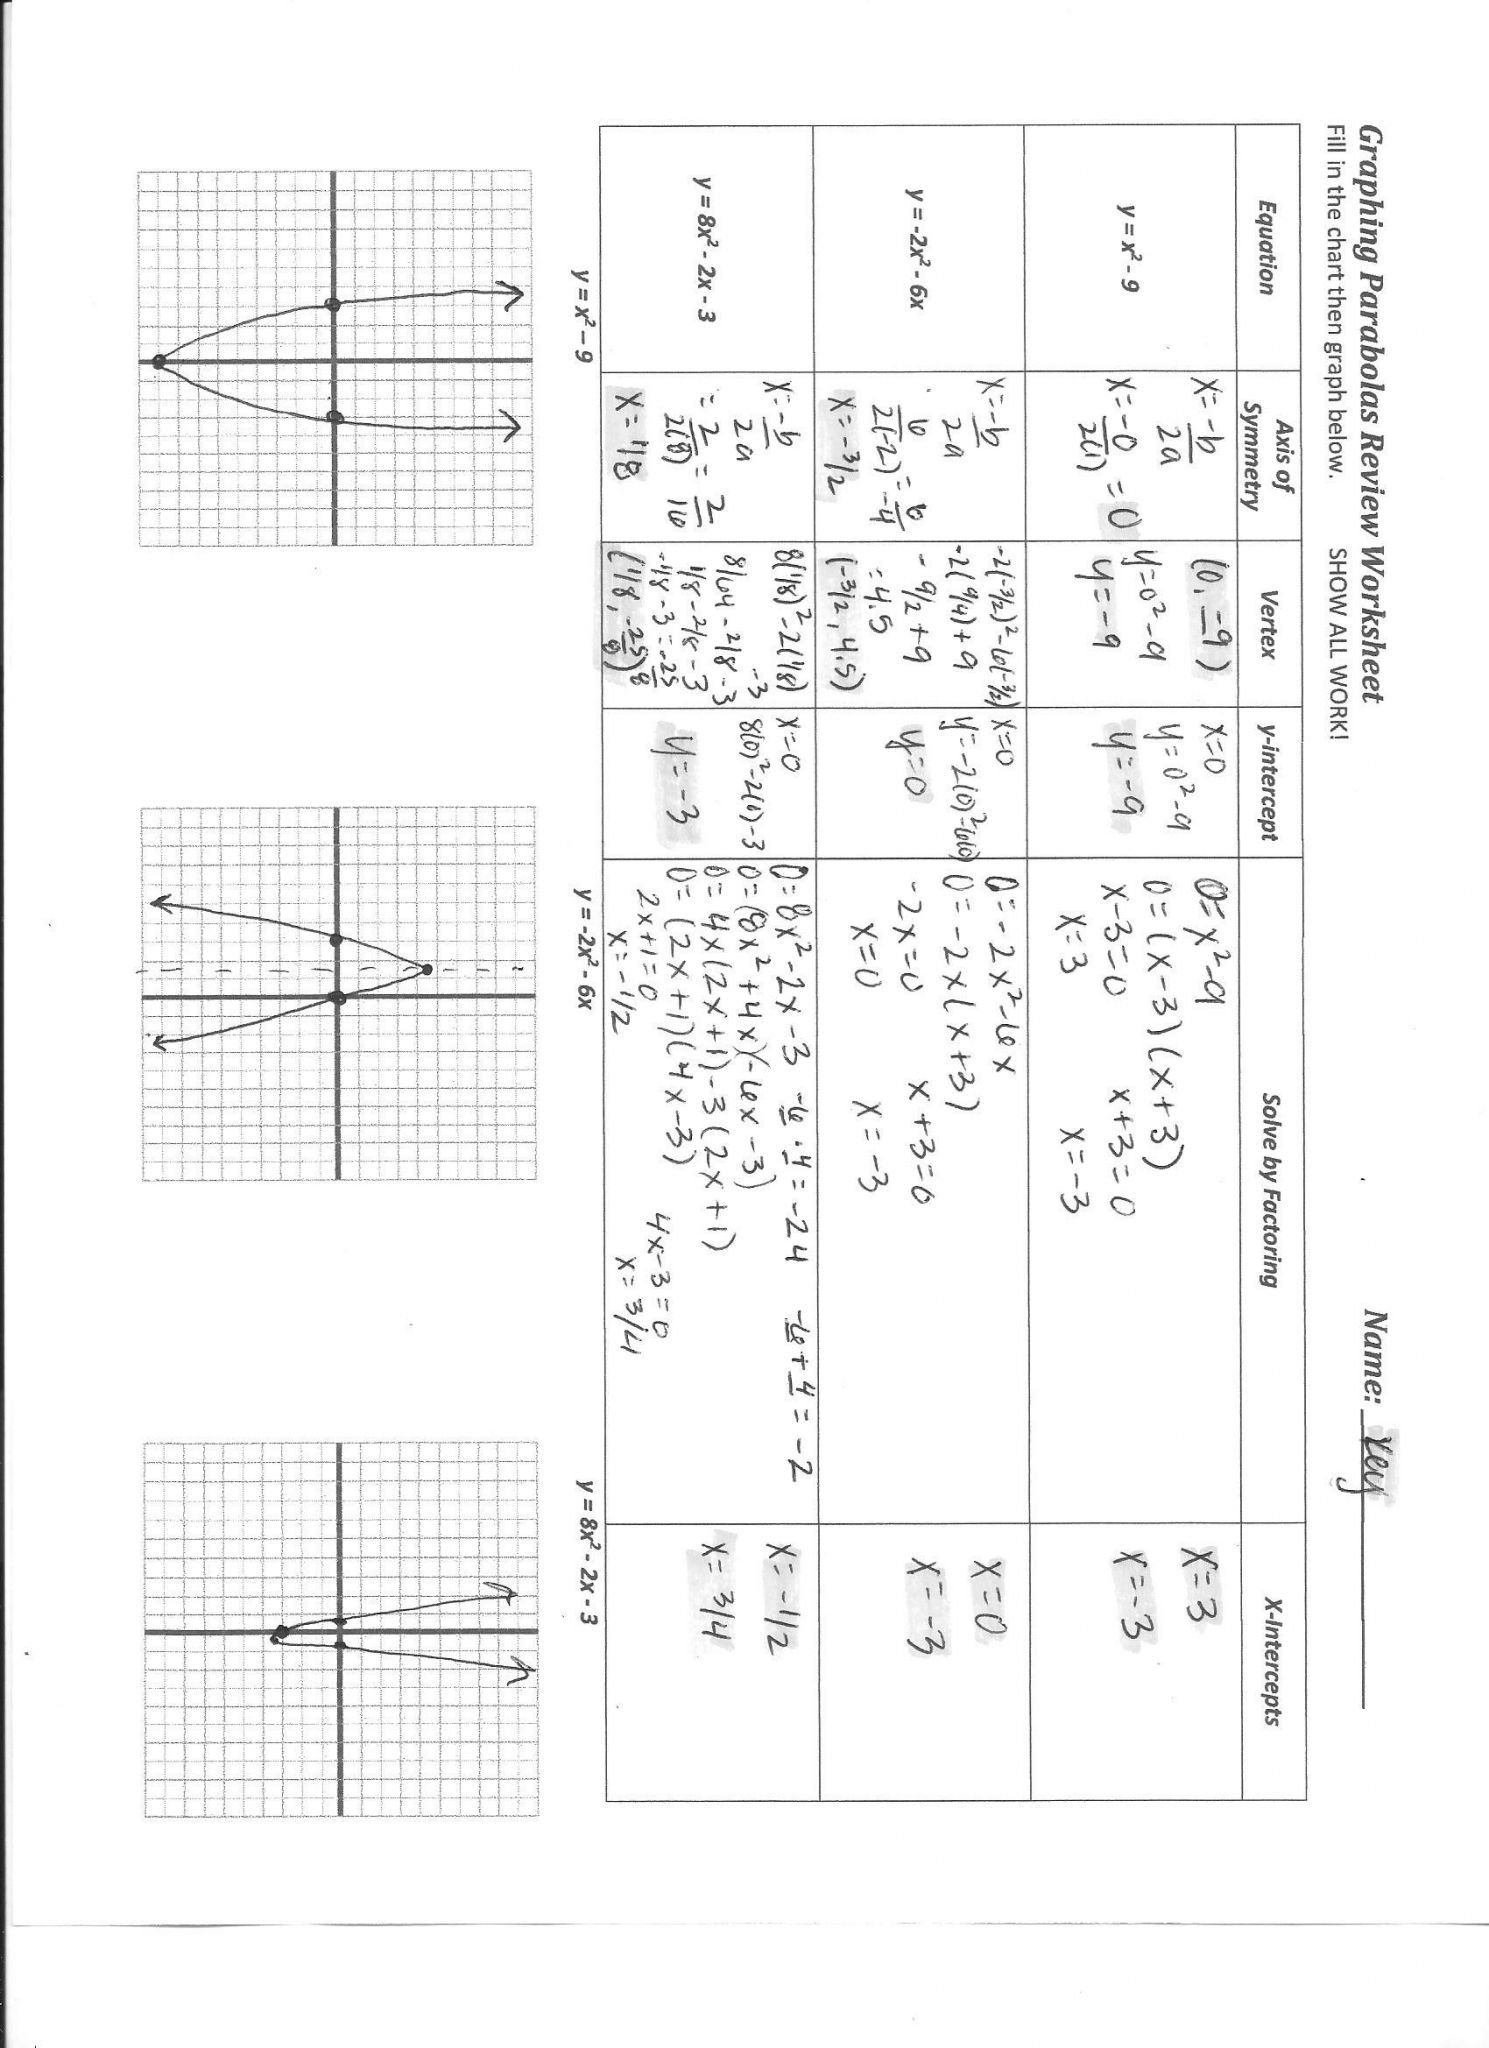 Graphing Quadratic Functions Worksheet Answer Key  Briefencounters With Graphing Quadratic Functions Worksheet Answer Key